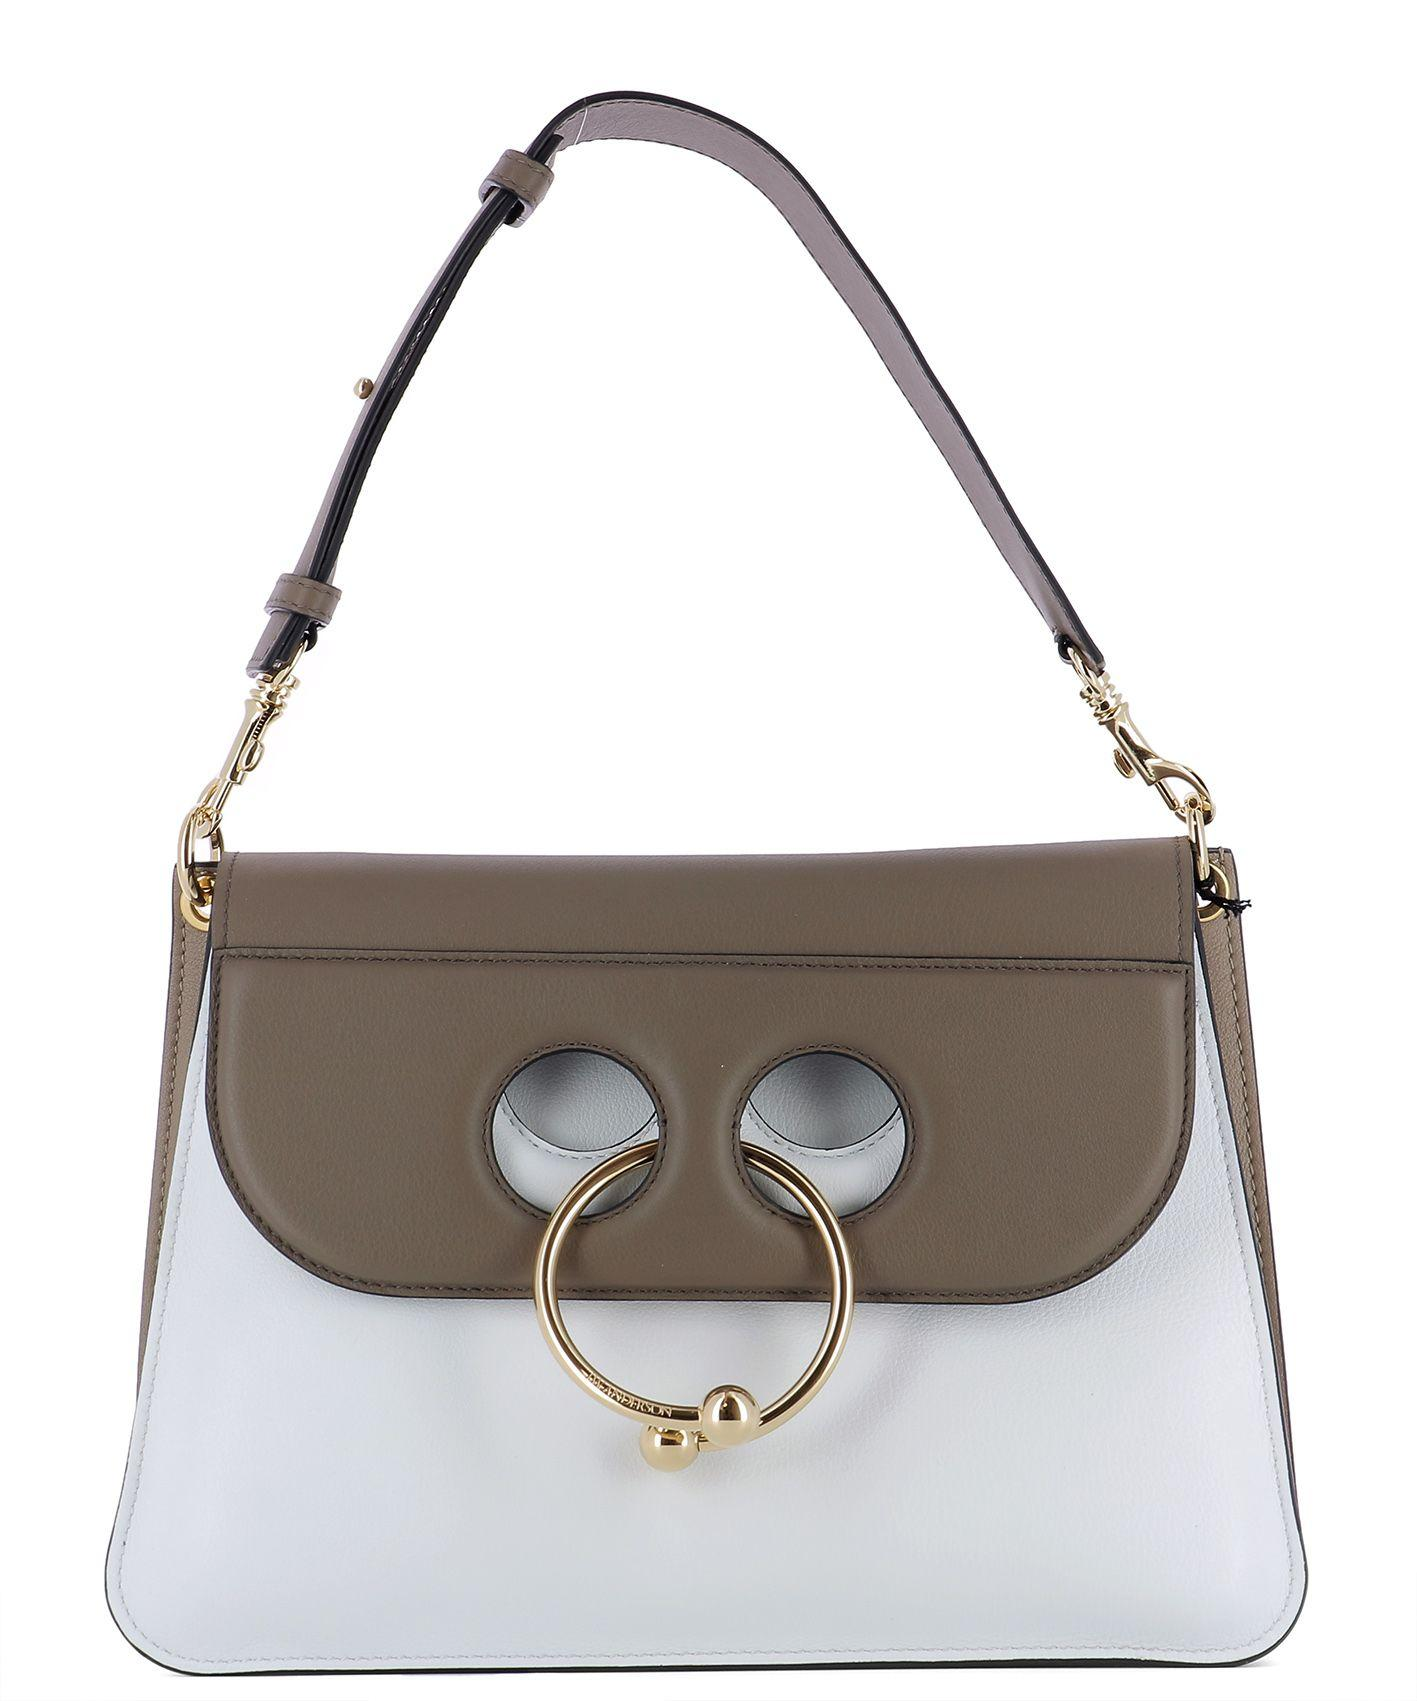 Jw Anderson White Leather Shoulder Bag